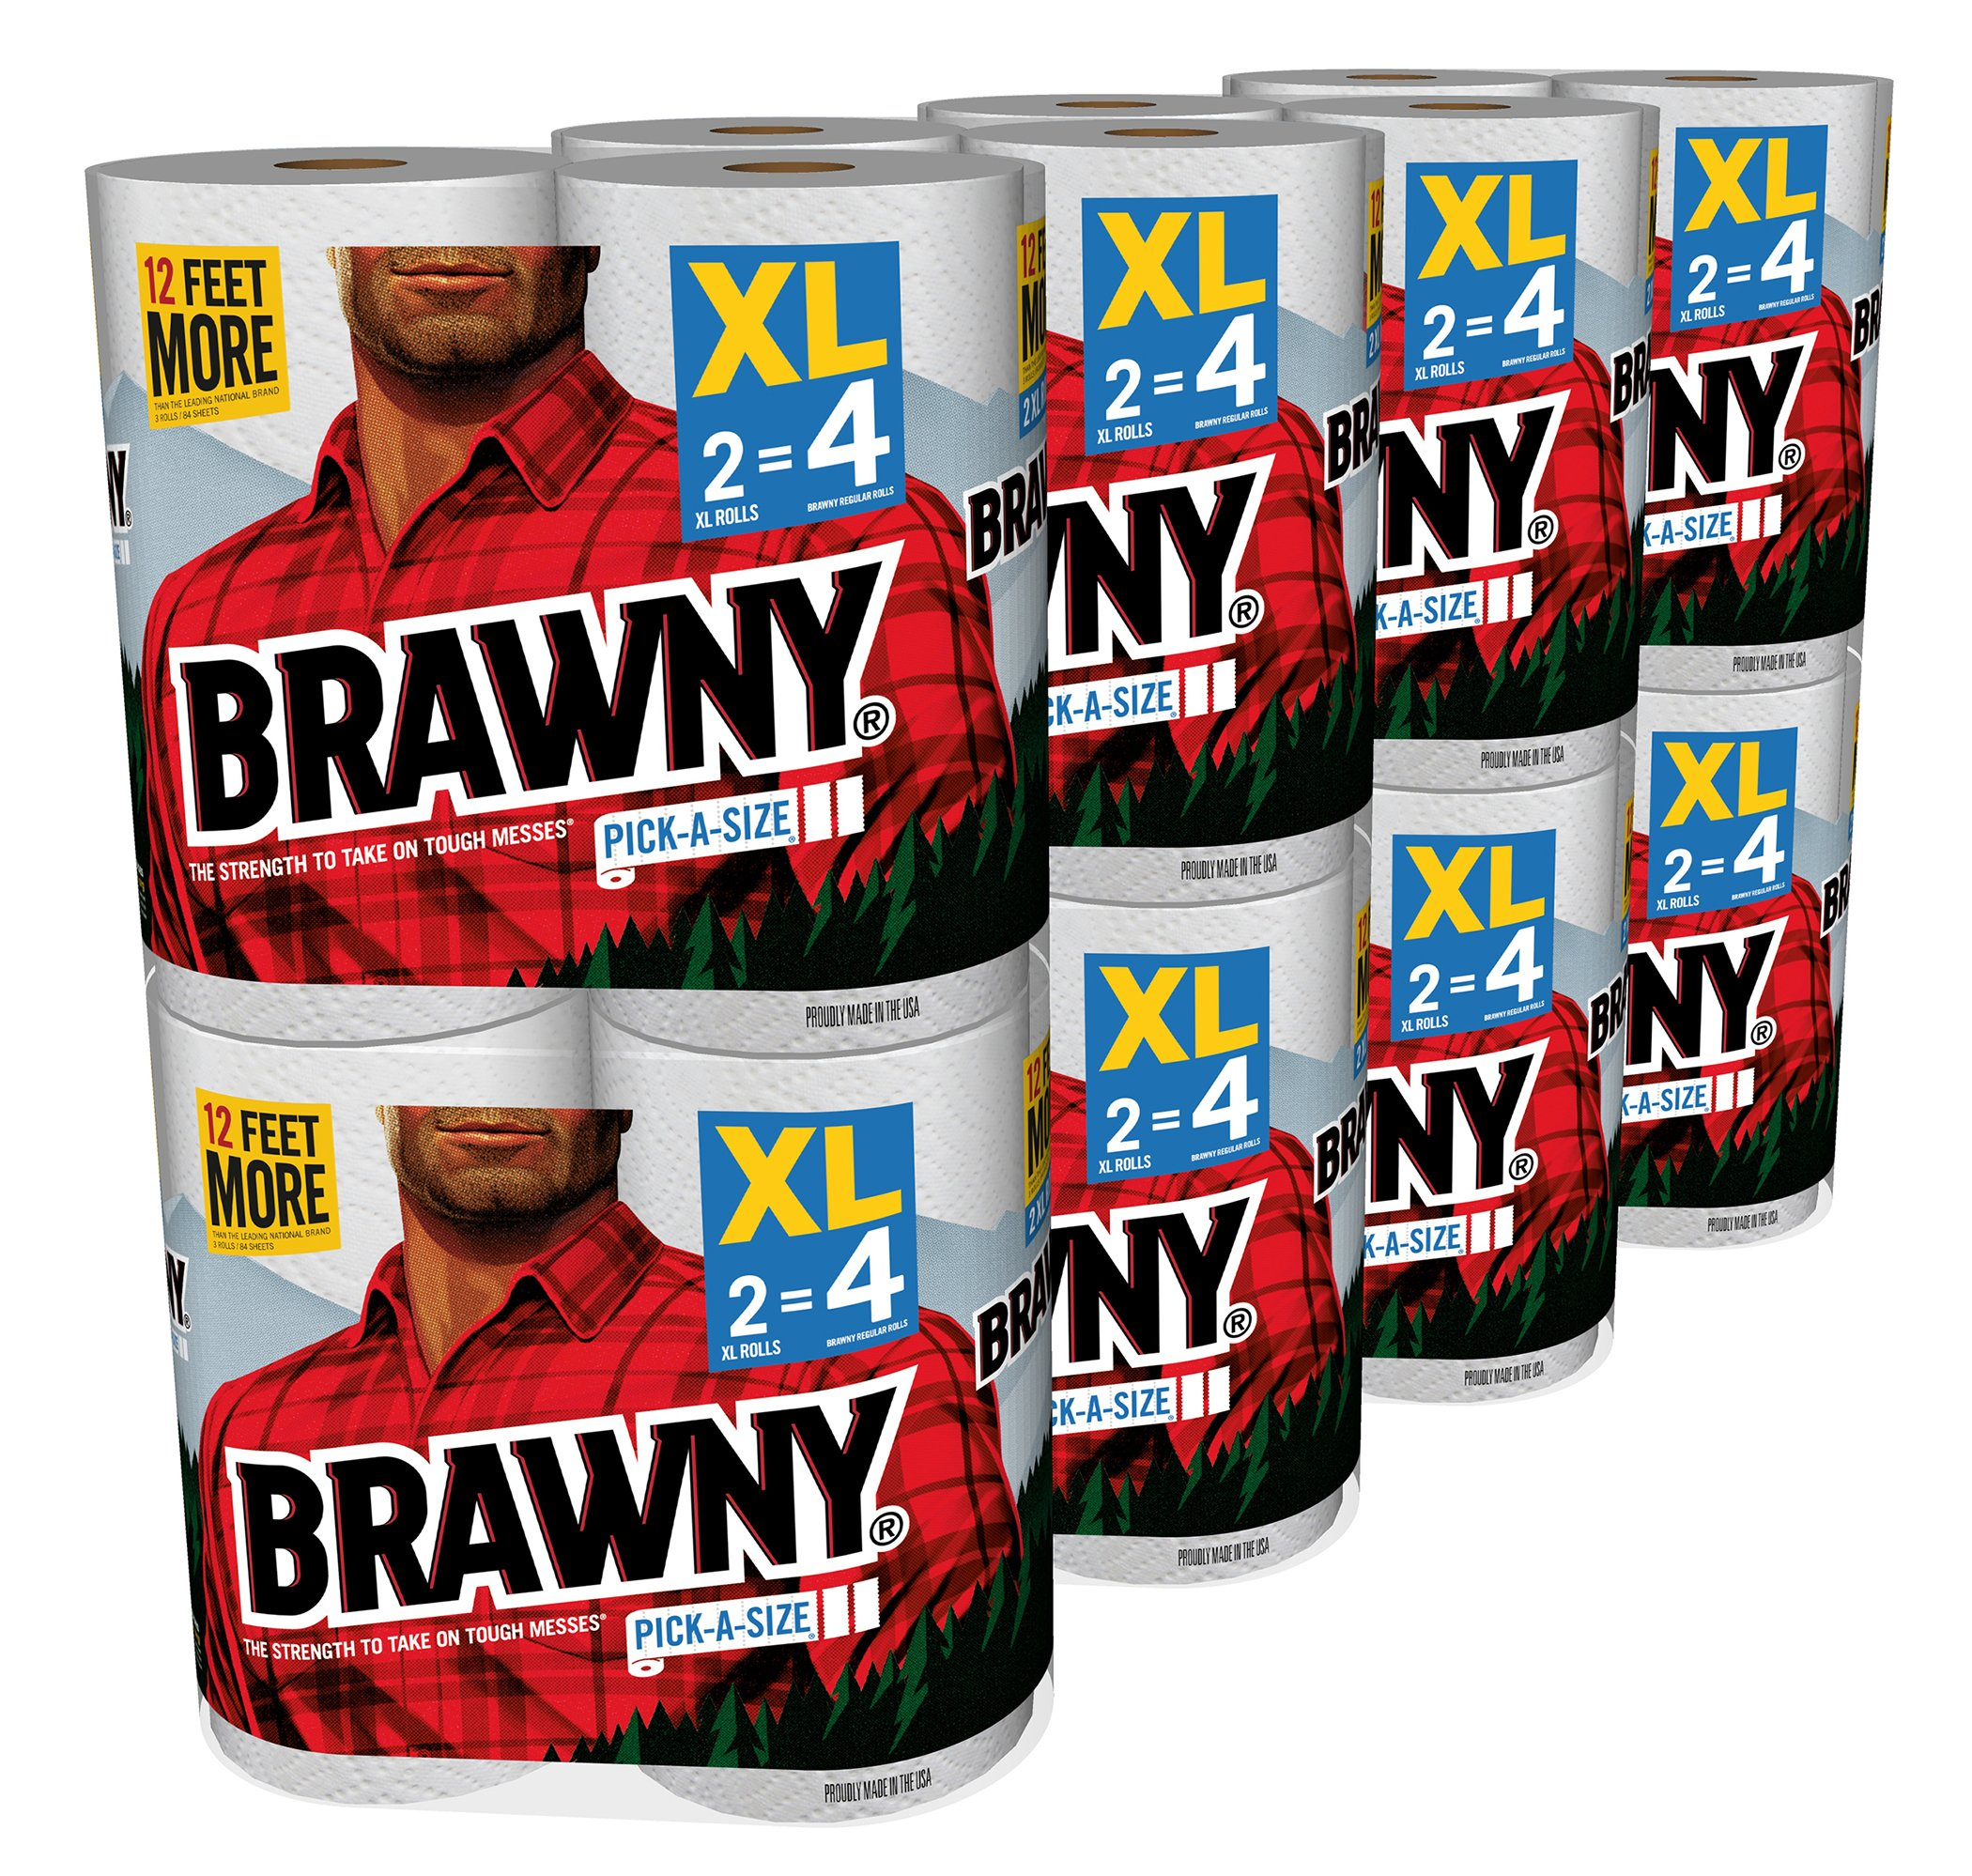 Brawny Pick-a-Size Paper Towels, White, XL Rolls, 16 XL Rolls (140 Sheets per roll)